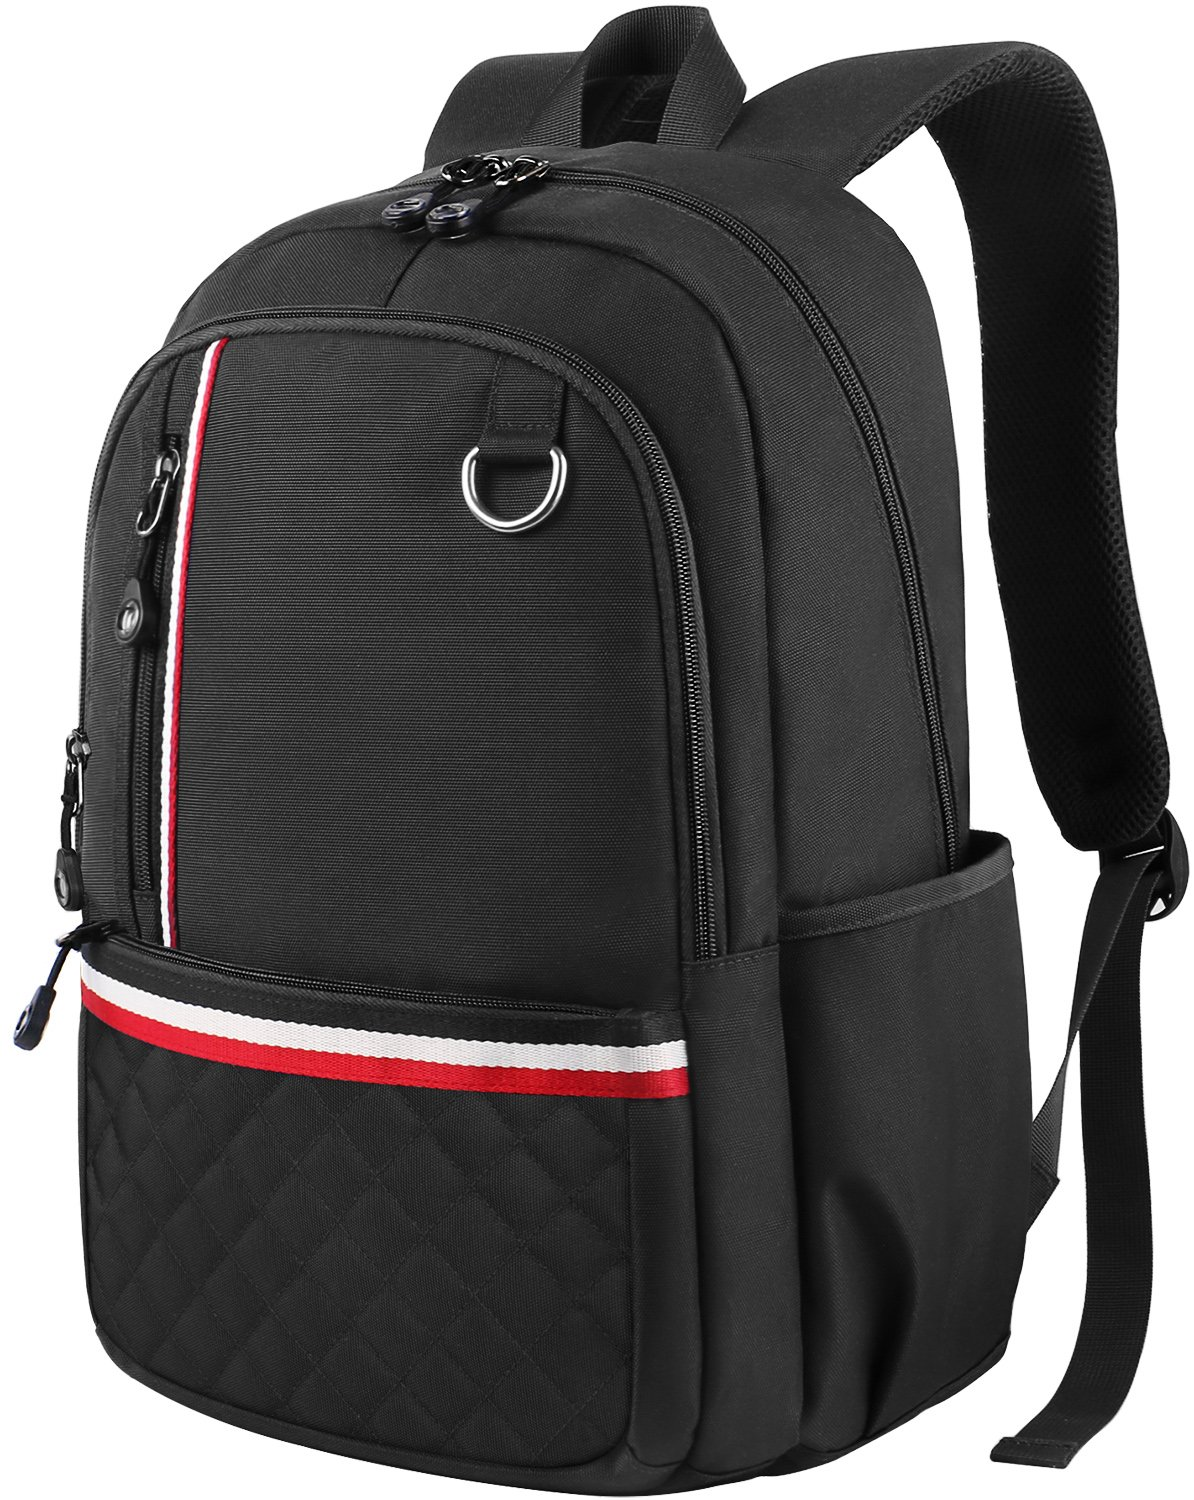 Middle School Backpack, Student Backpack Laptop Bag for Women Men Girls Boys, Cute Lightweight Water-Resistant Slim Computer Bookbag for High School/College/Travel Fits 14 inch Laptop Notebook, Black